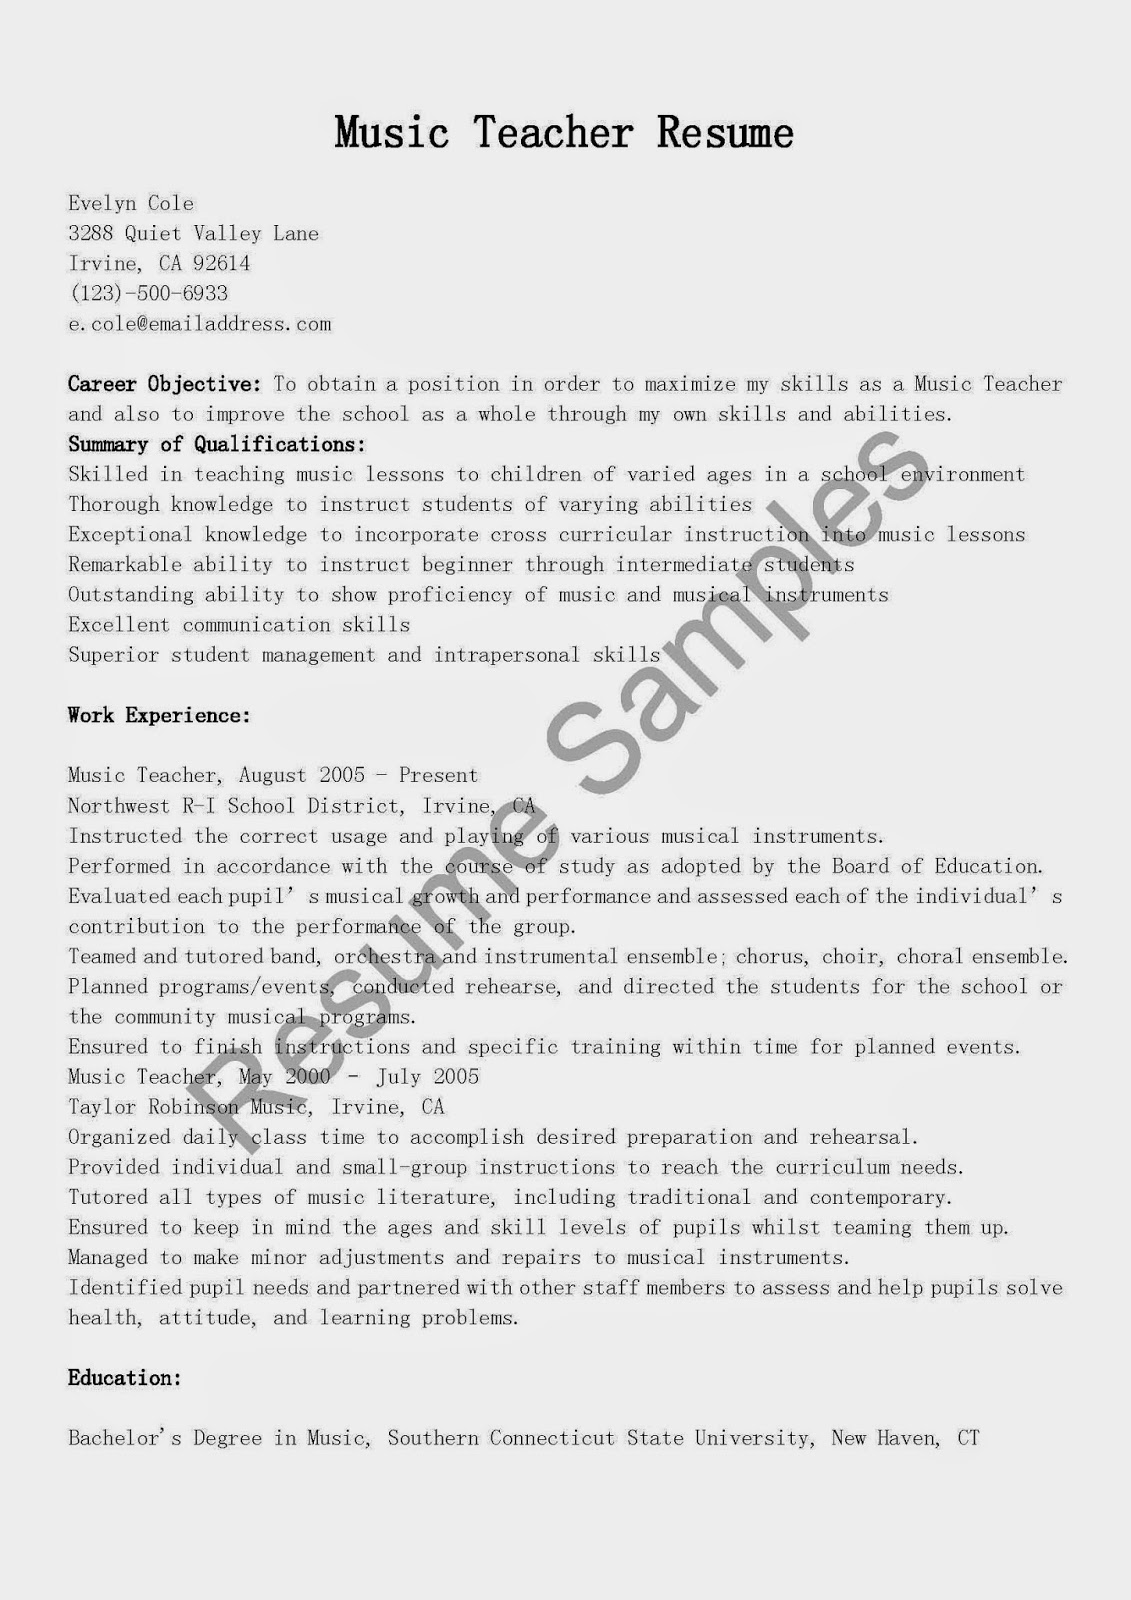 Music Resume Format Musician Resume Ideas